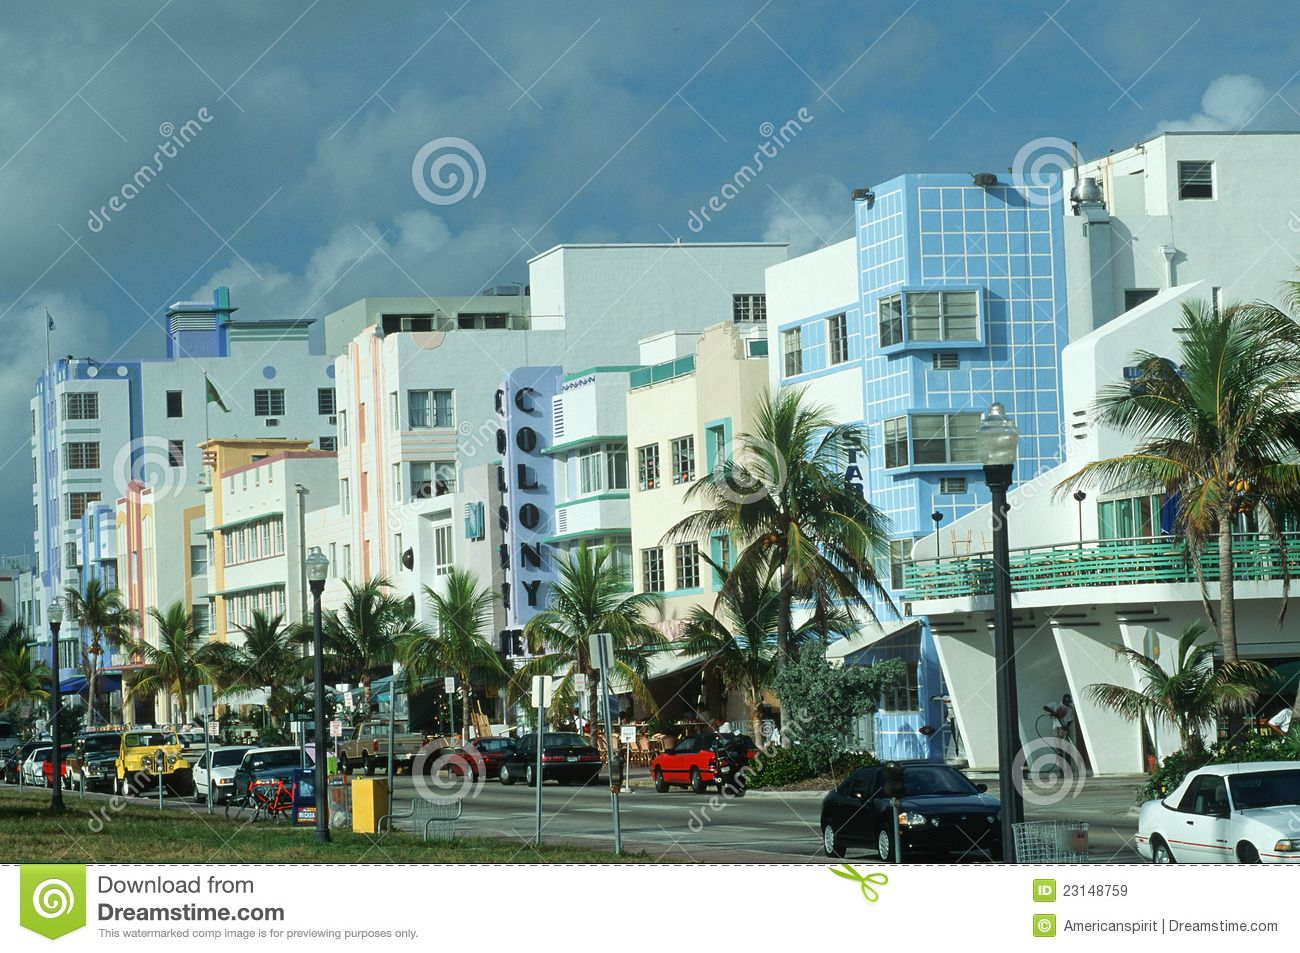 American Art Deco Miami Fl Ocean Drive South Beach 800 Preserved Buildings In The Art Deco Style Style Overlaps Deco And Art Moderne Tends T Guzel Yerler